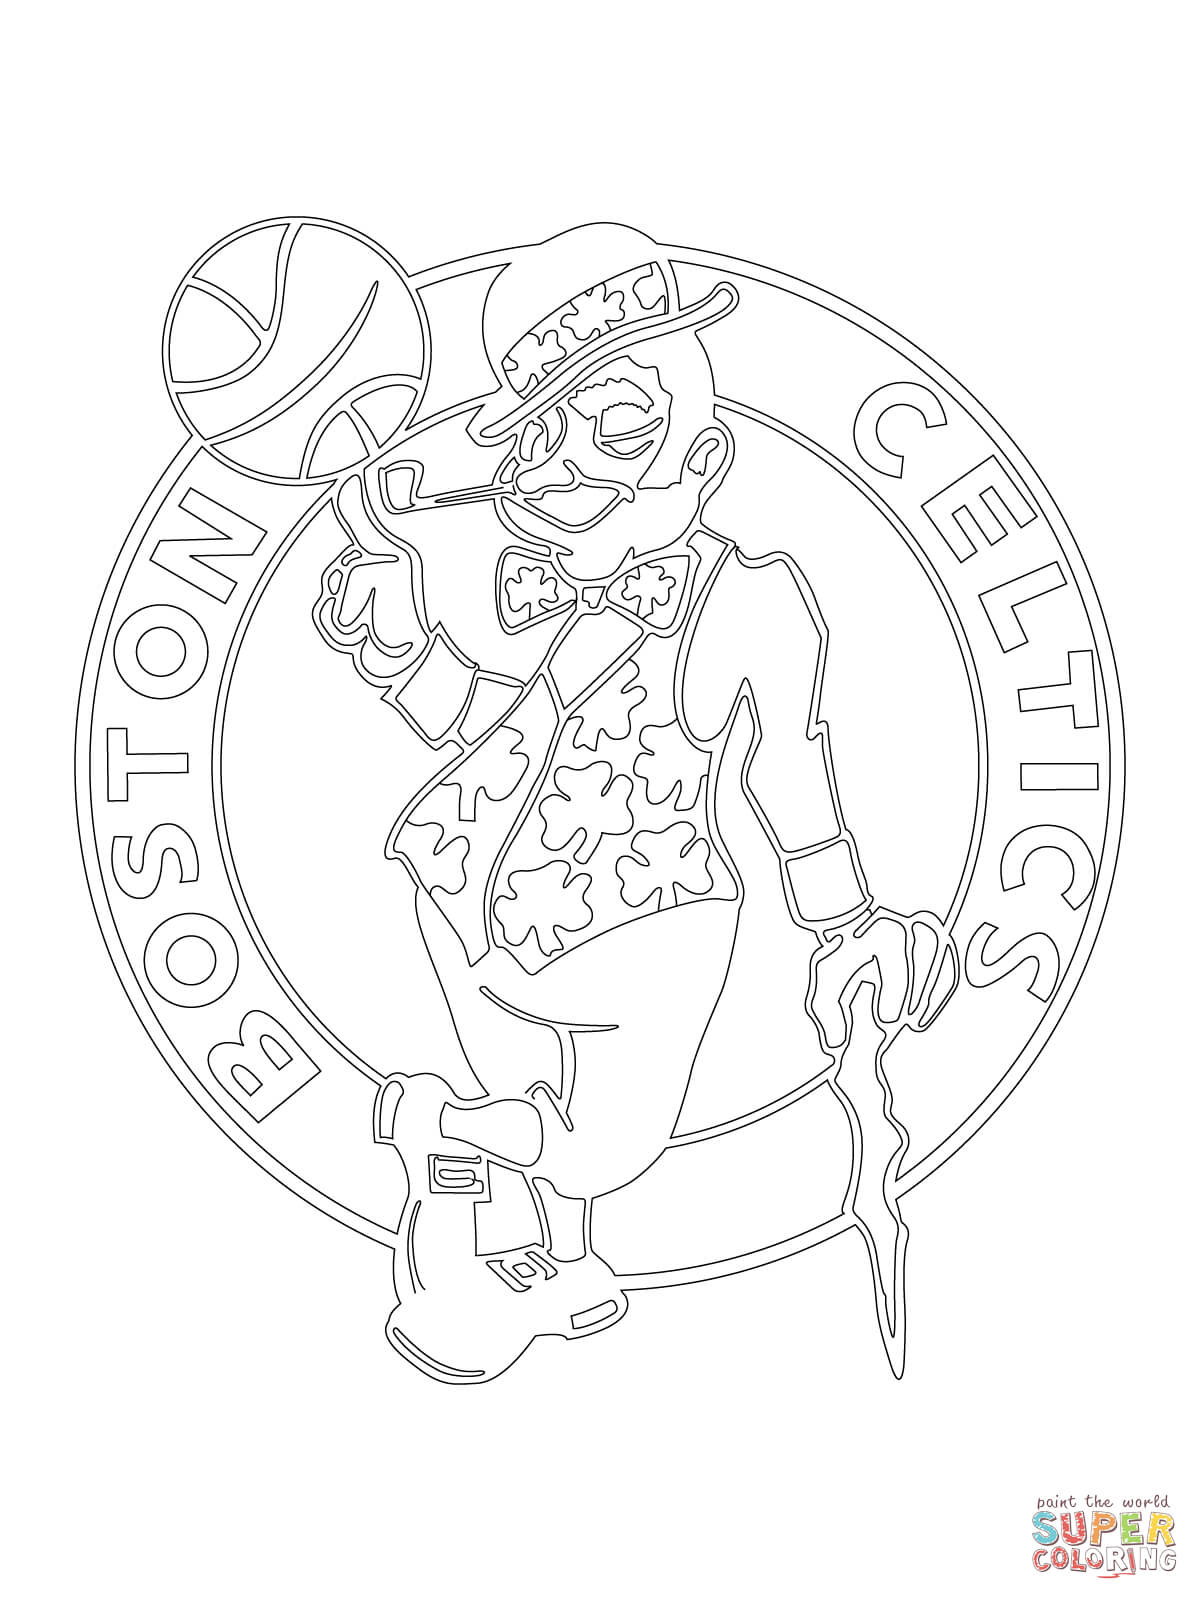 Boston Tea Party Coloring Pages at GetDrawings.com | Free for ...